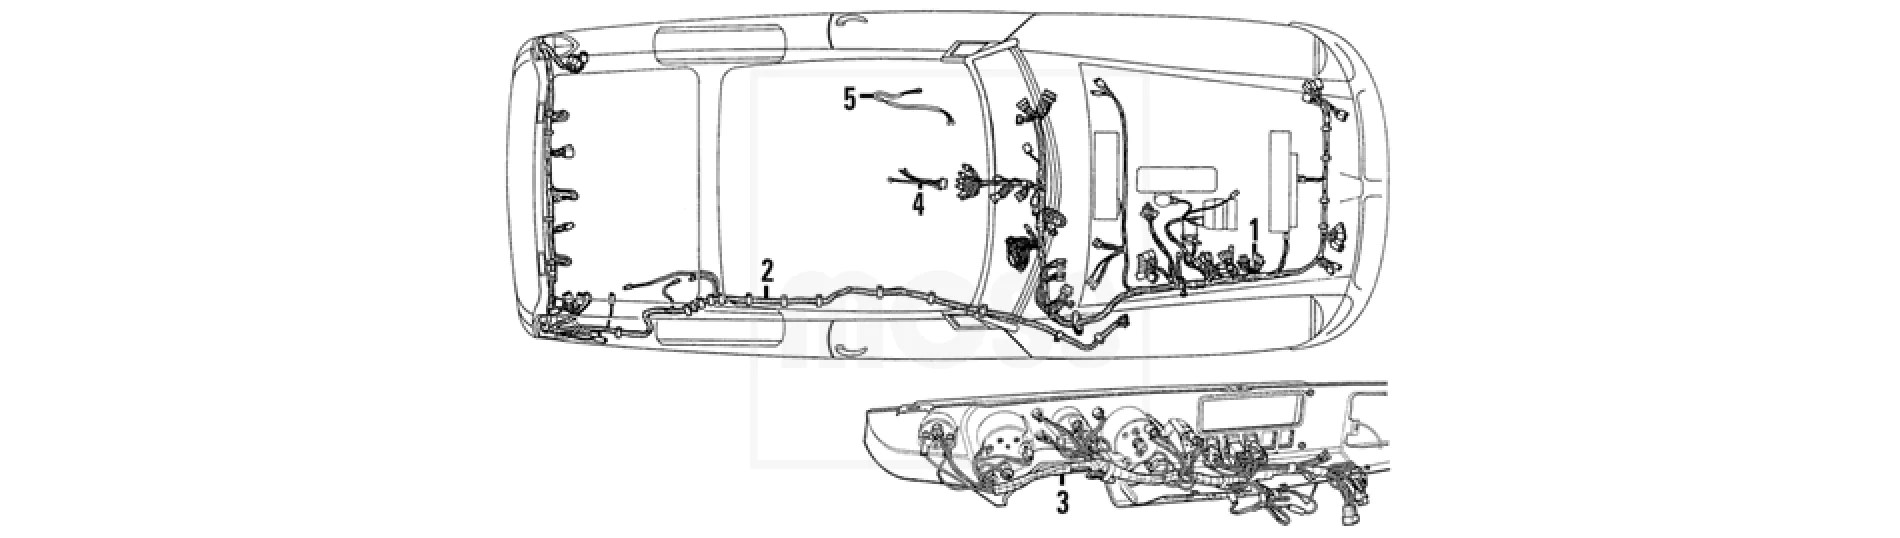 medium resolution of mgb wiring harness wiring diagram article mgb c v8 electrical wiring looms fittings wiring